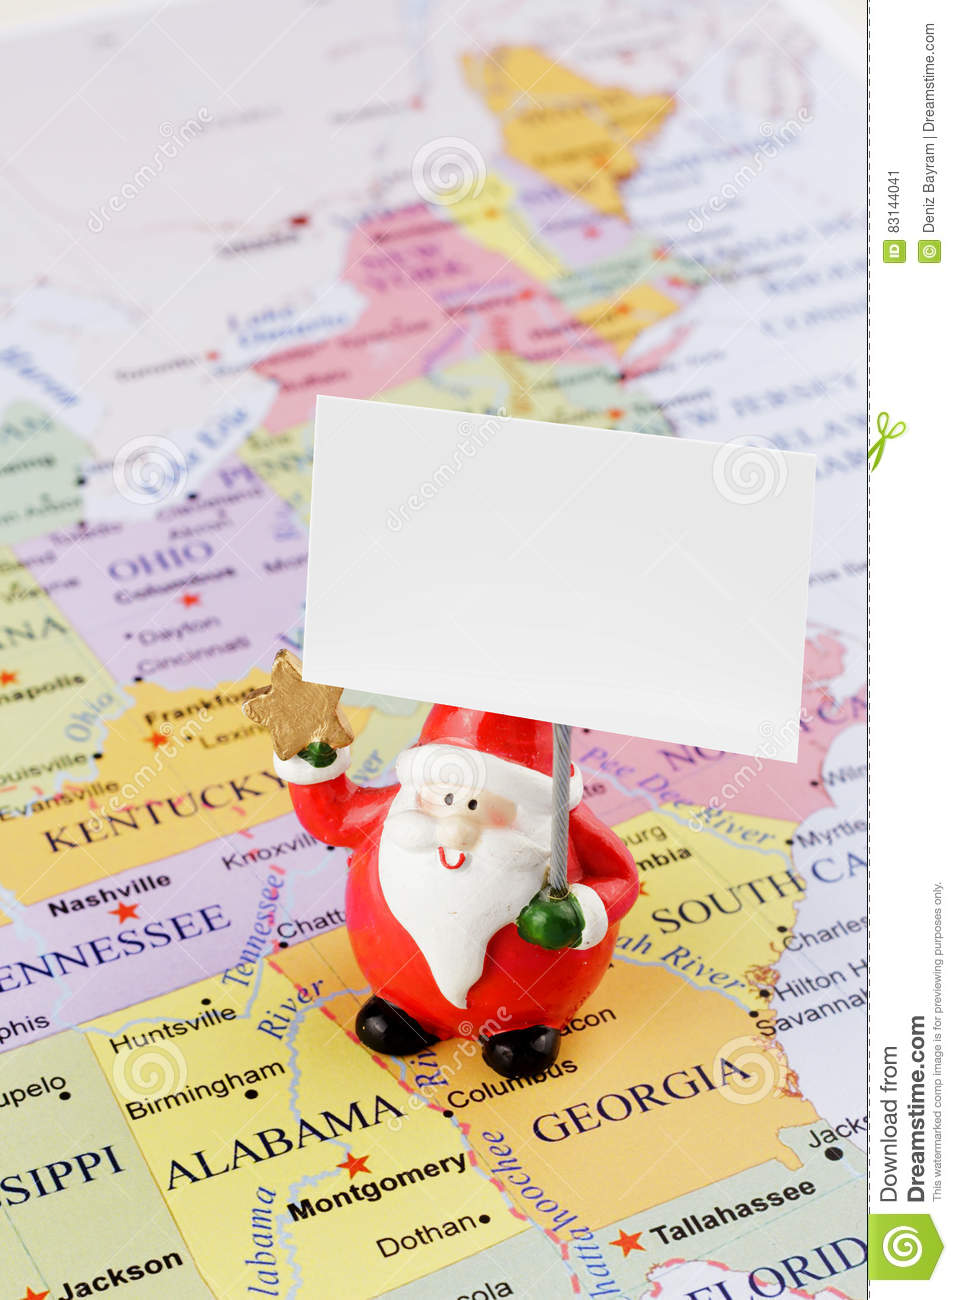 Santa Claus on the USA map stock image. Image of environment ... on oolitic map, oats map, tell city map, gulf of antalya on a map, headless horseman map, splashin safari map, santa and his reindeer, north pole map, track santa map, christmas map,